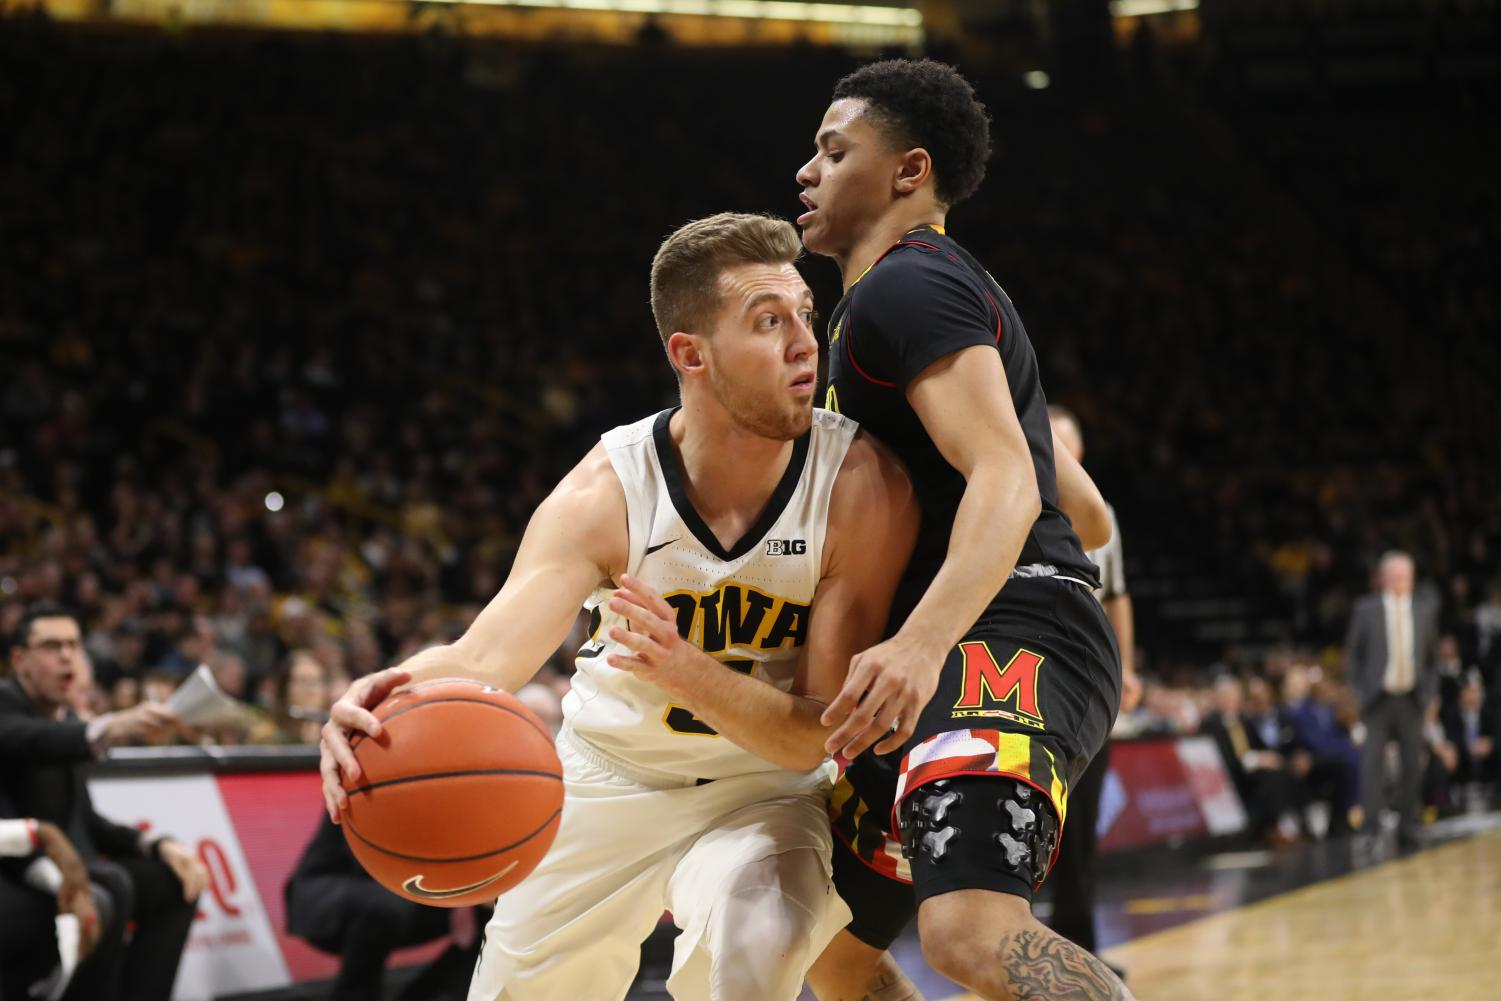 No. 24 Maryland tops No. 21 Iowa in final seconds